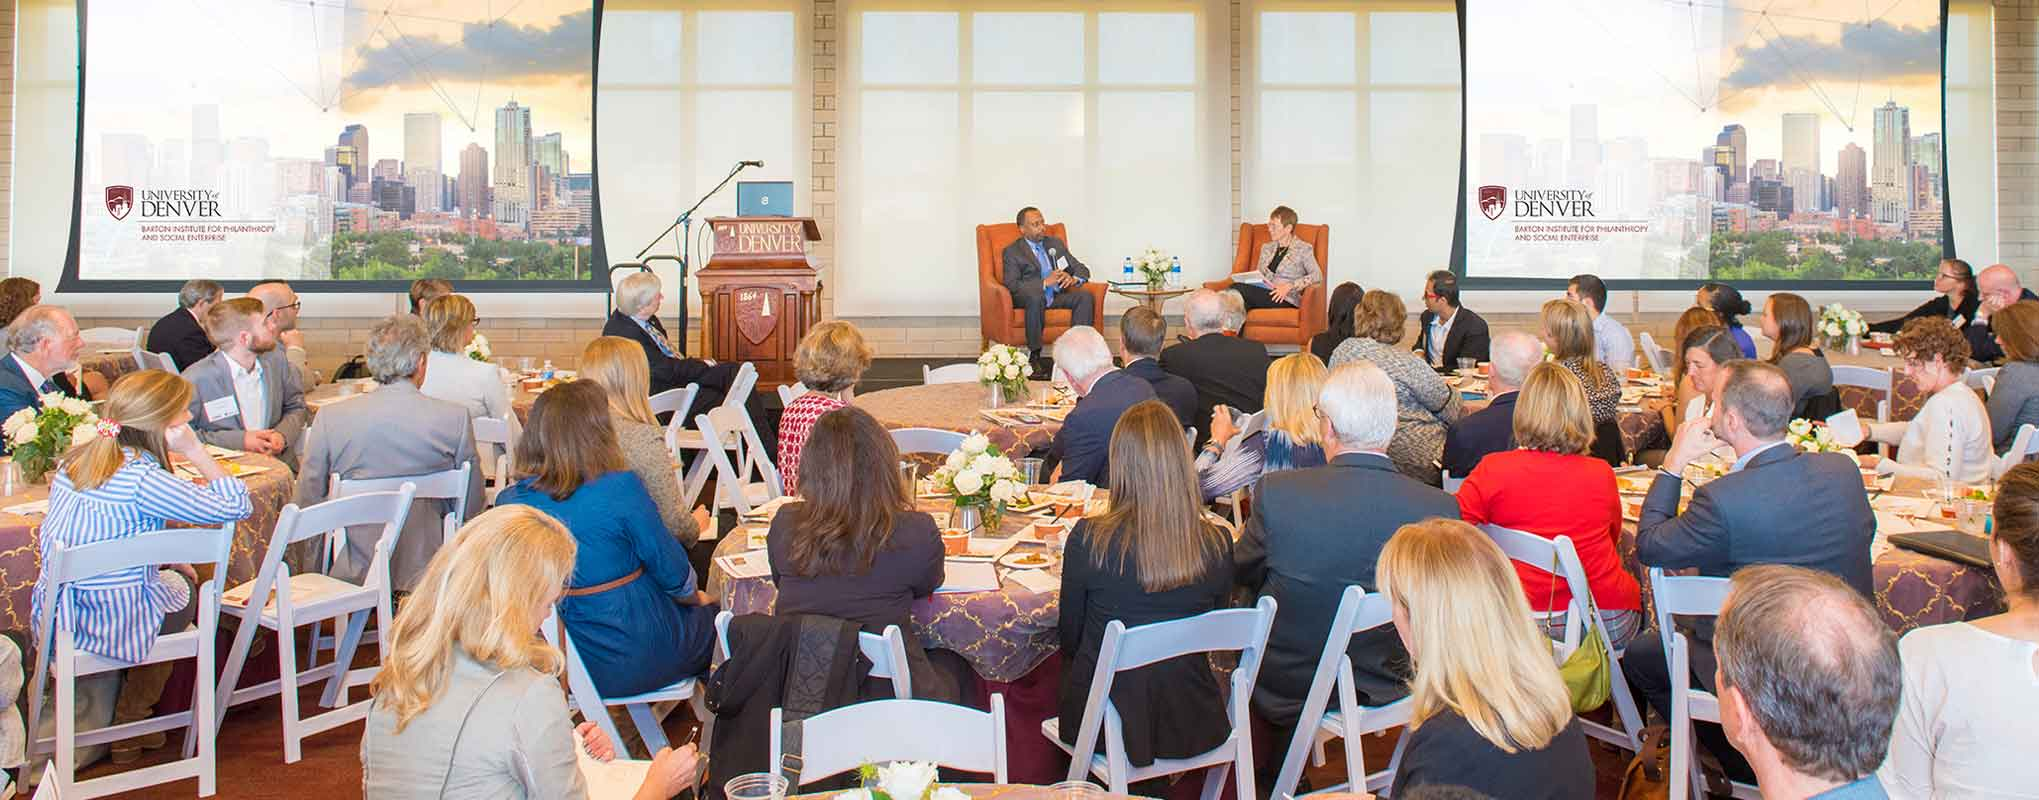 Hundreds of civic leaders gather at the Barton Institute's Bold Philanthropy event.